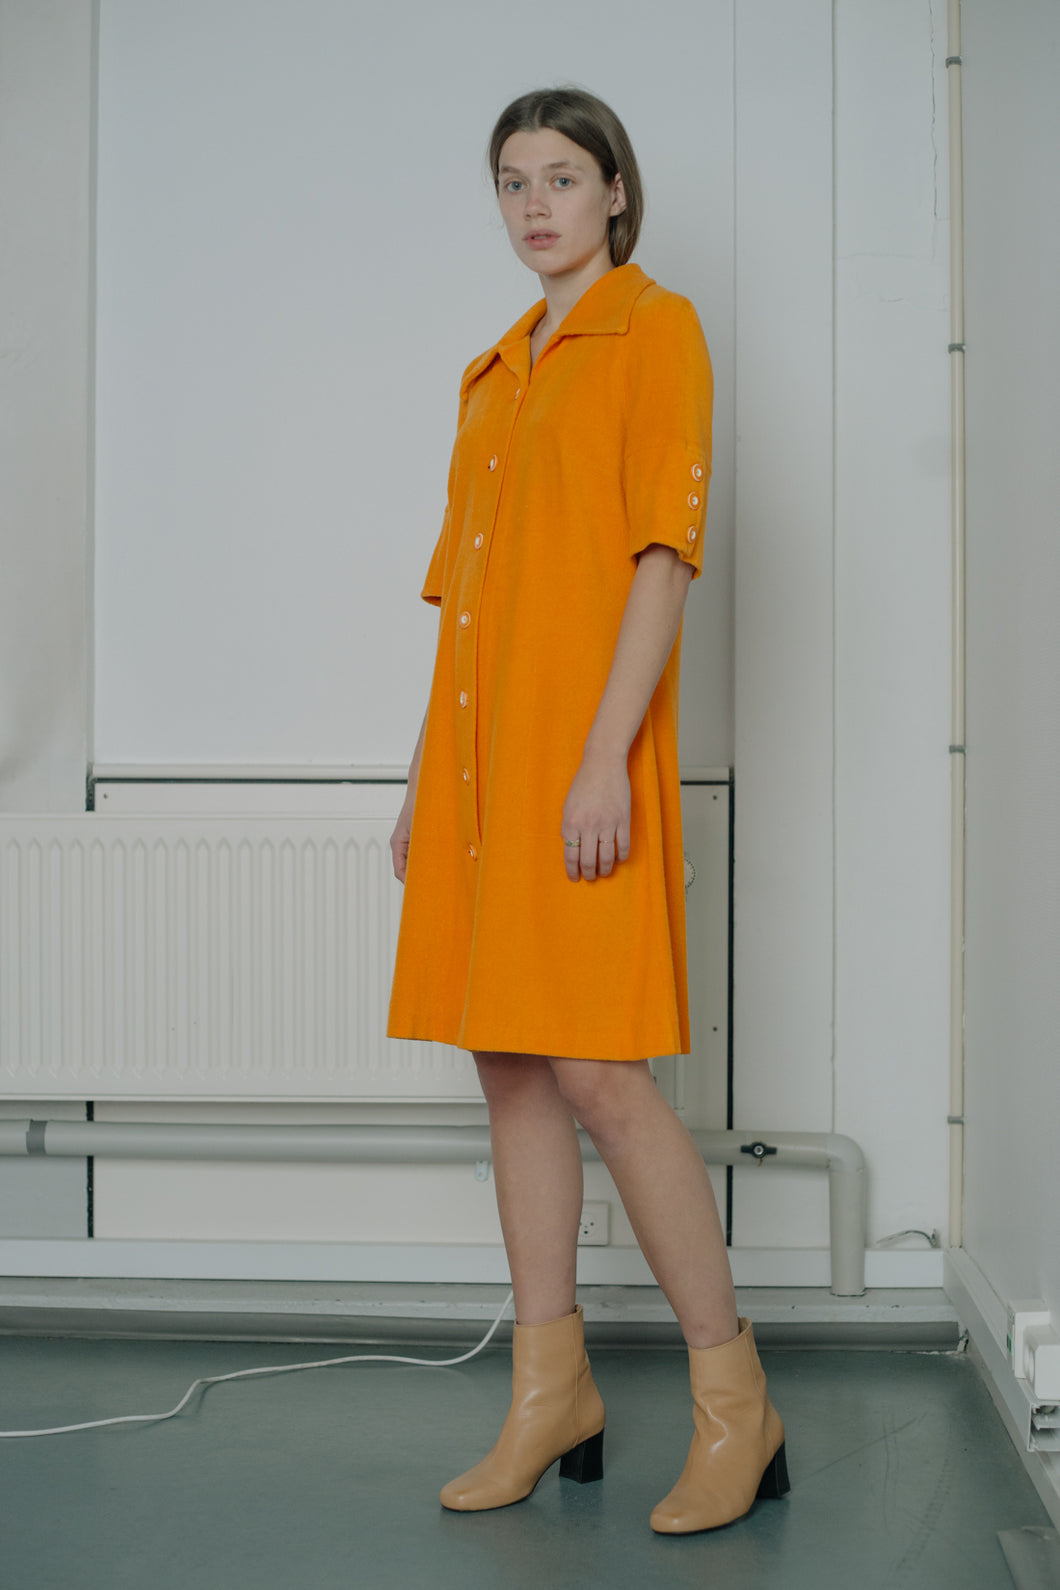 Vintage beachwear shirt dress by Louis Féraud in bright orange color